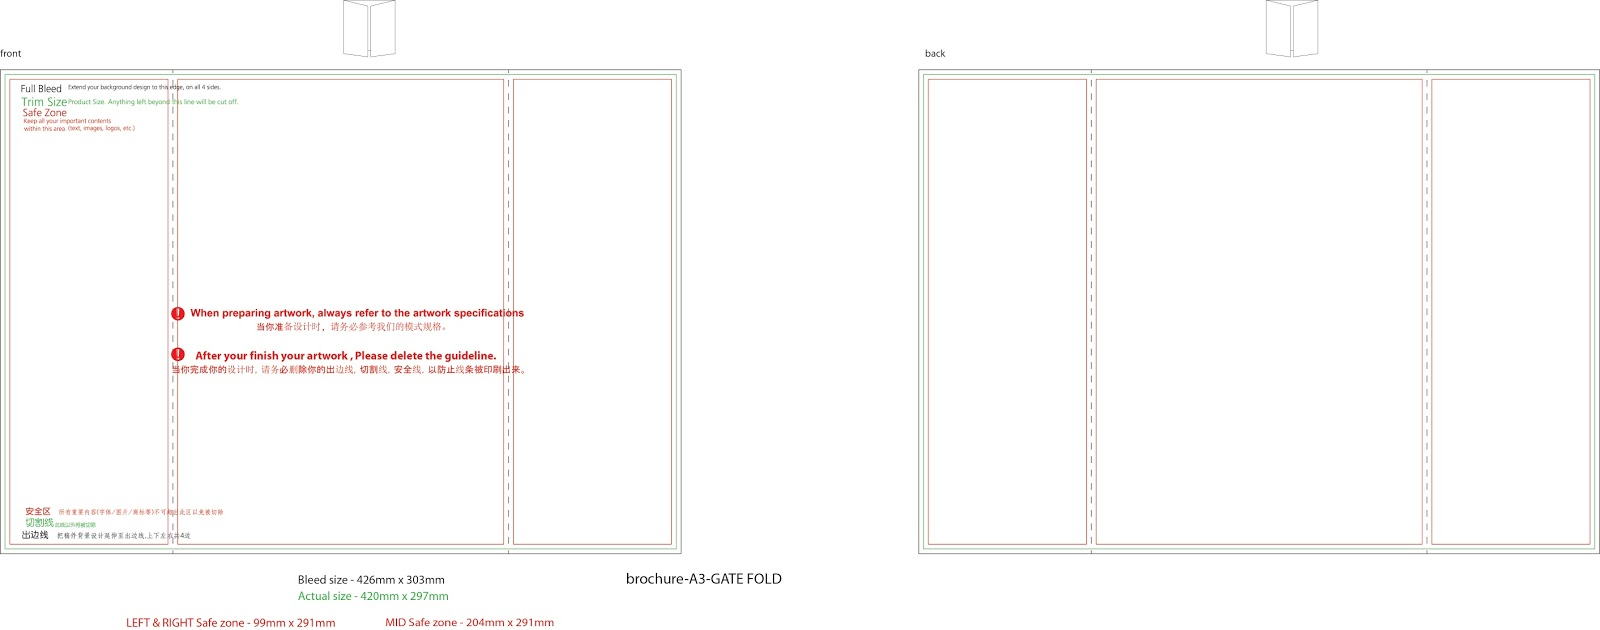 4 panel brochure template - double gate fold brochure template free download d